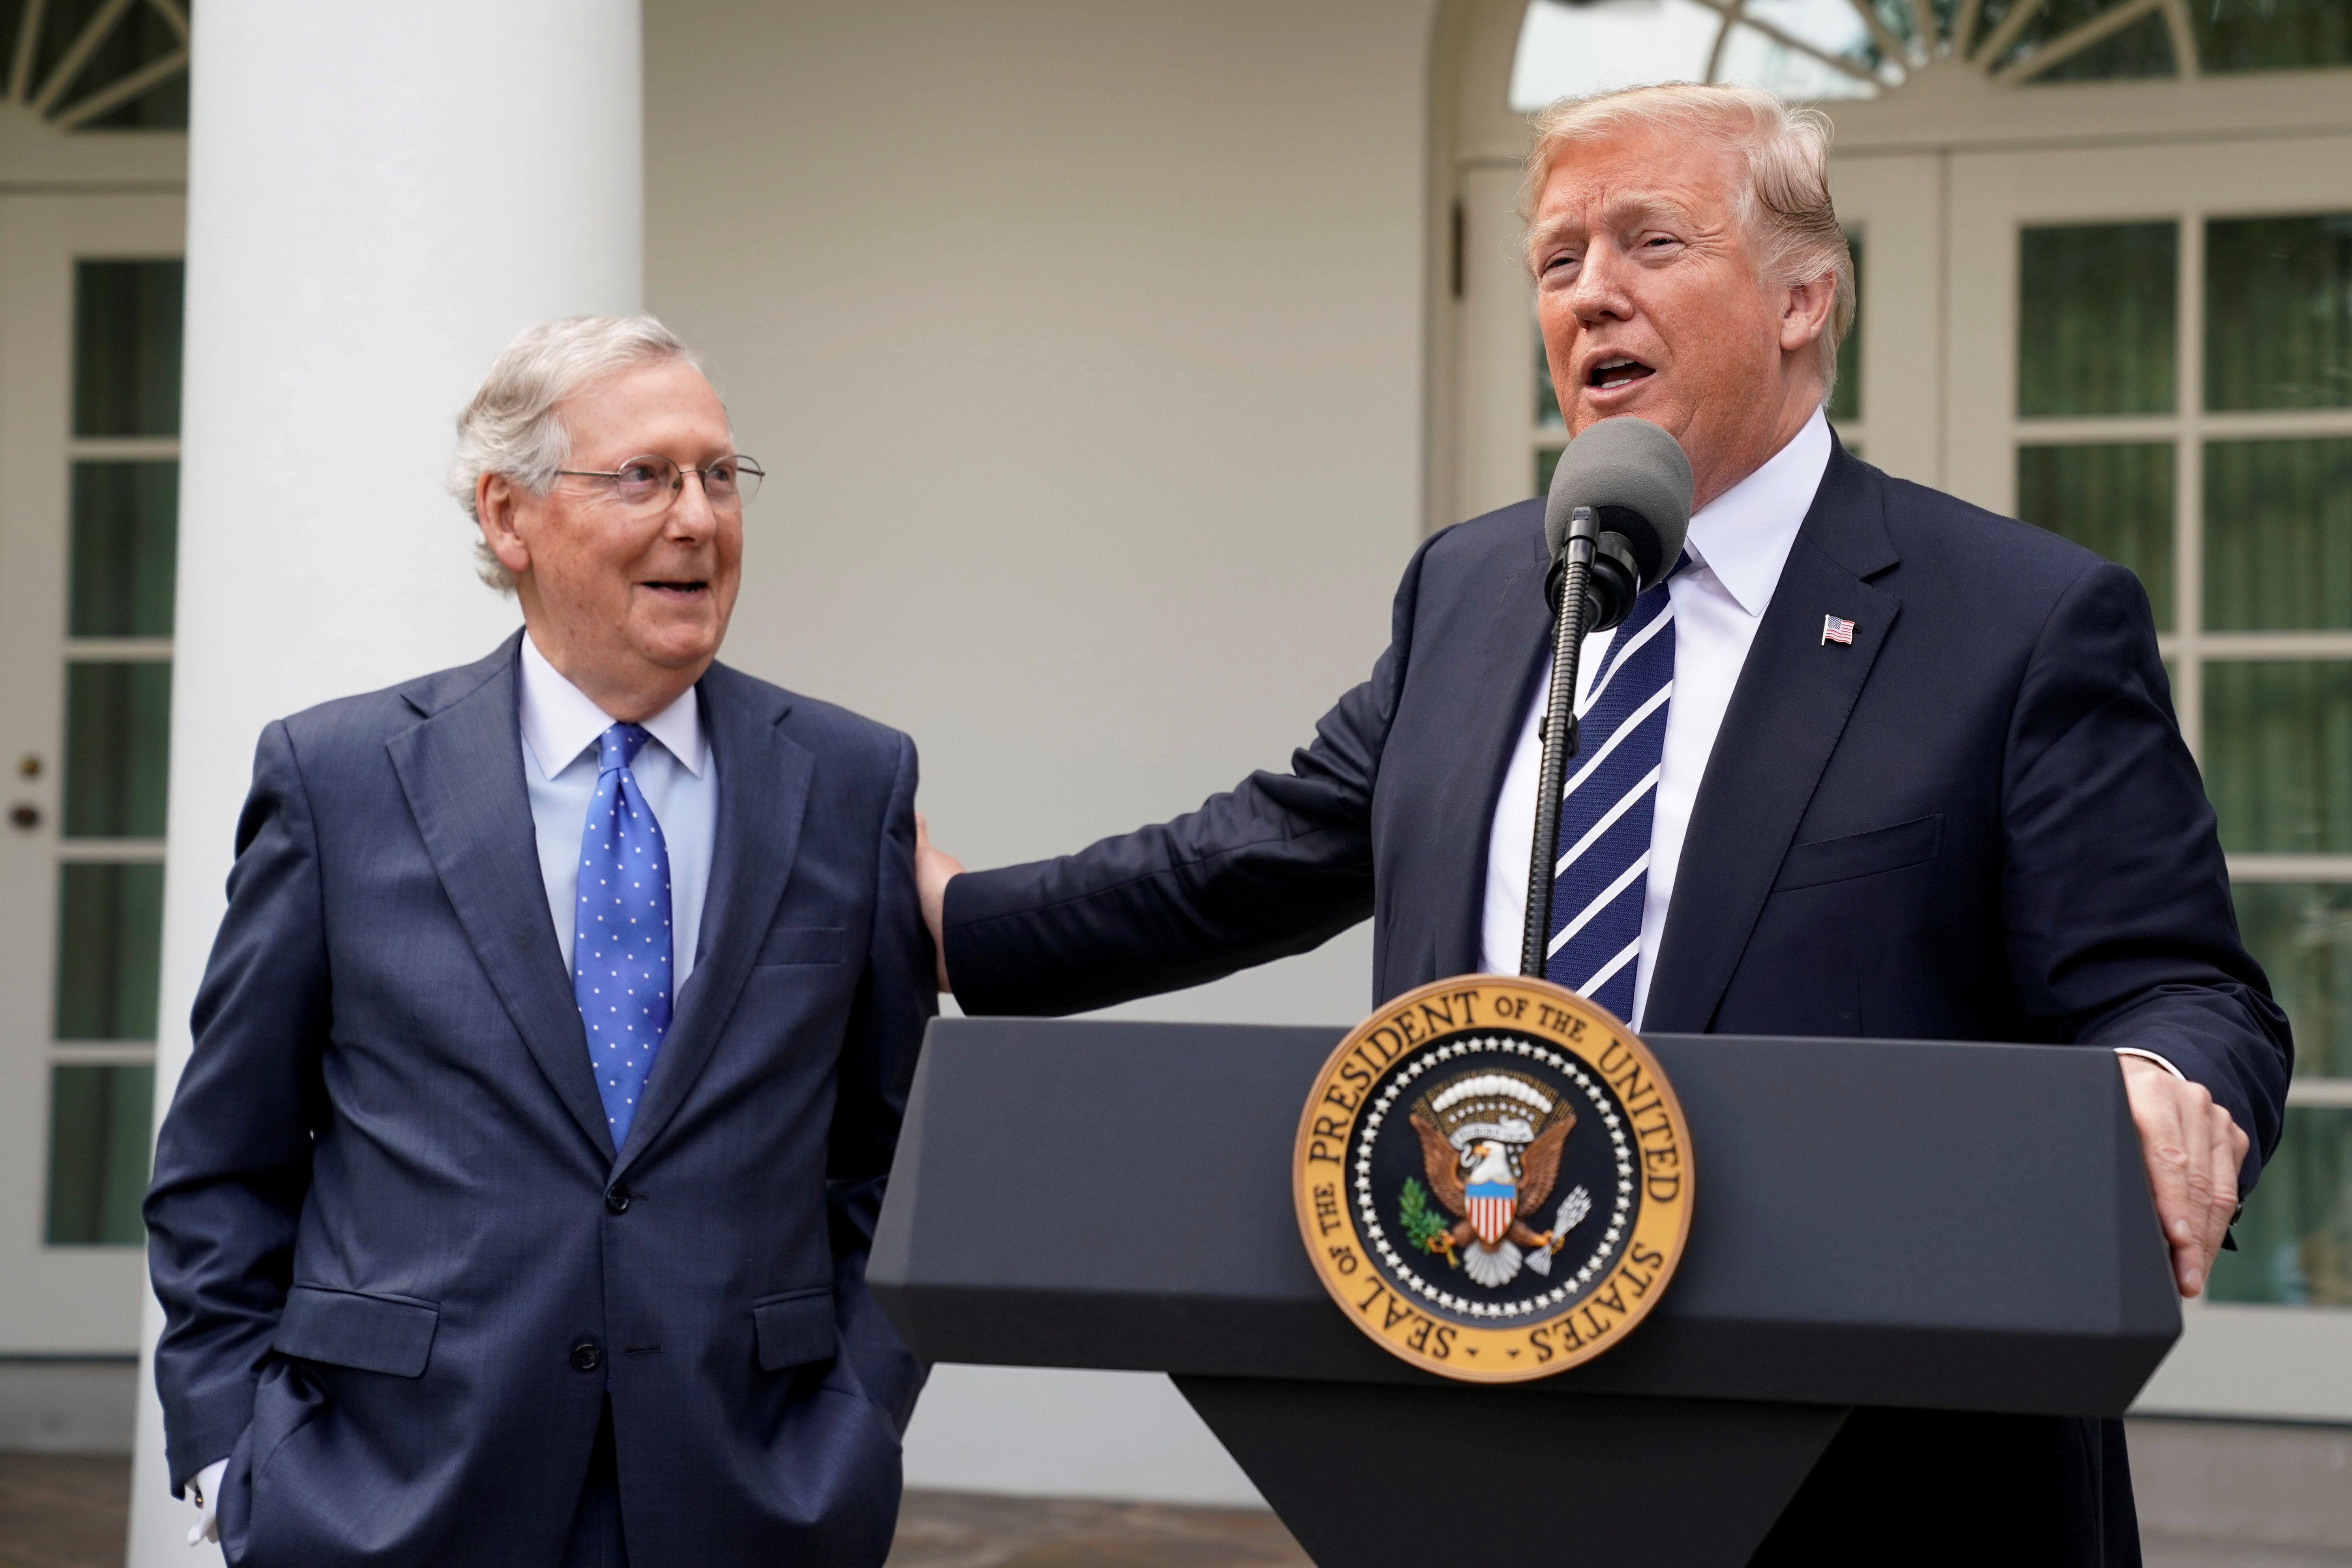 U.S. President Donald Trump speaks to the media with U.S. Senate Majority Leader Mitch McConnell at his side in the Rose Garden of the White House in Washington, U.S., October 16, 2017. REUTERS/Yuri Gripas